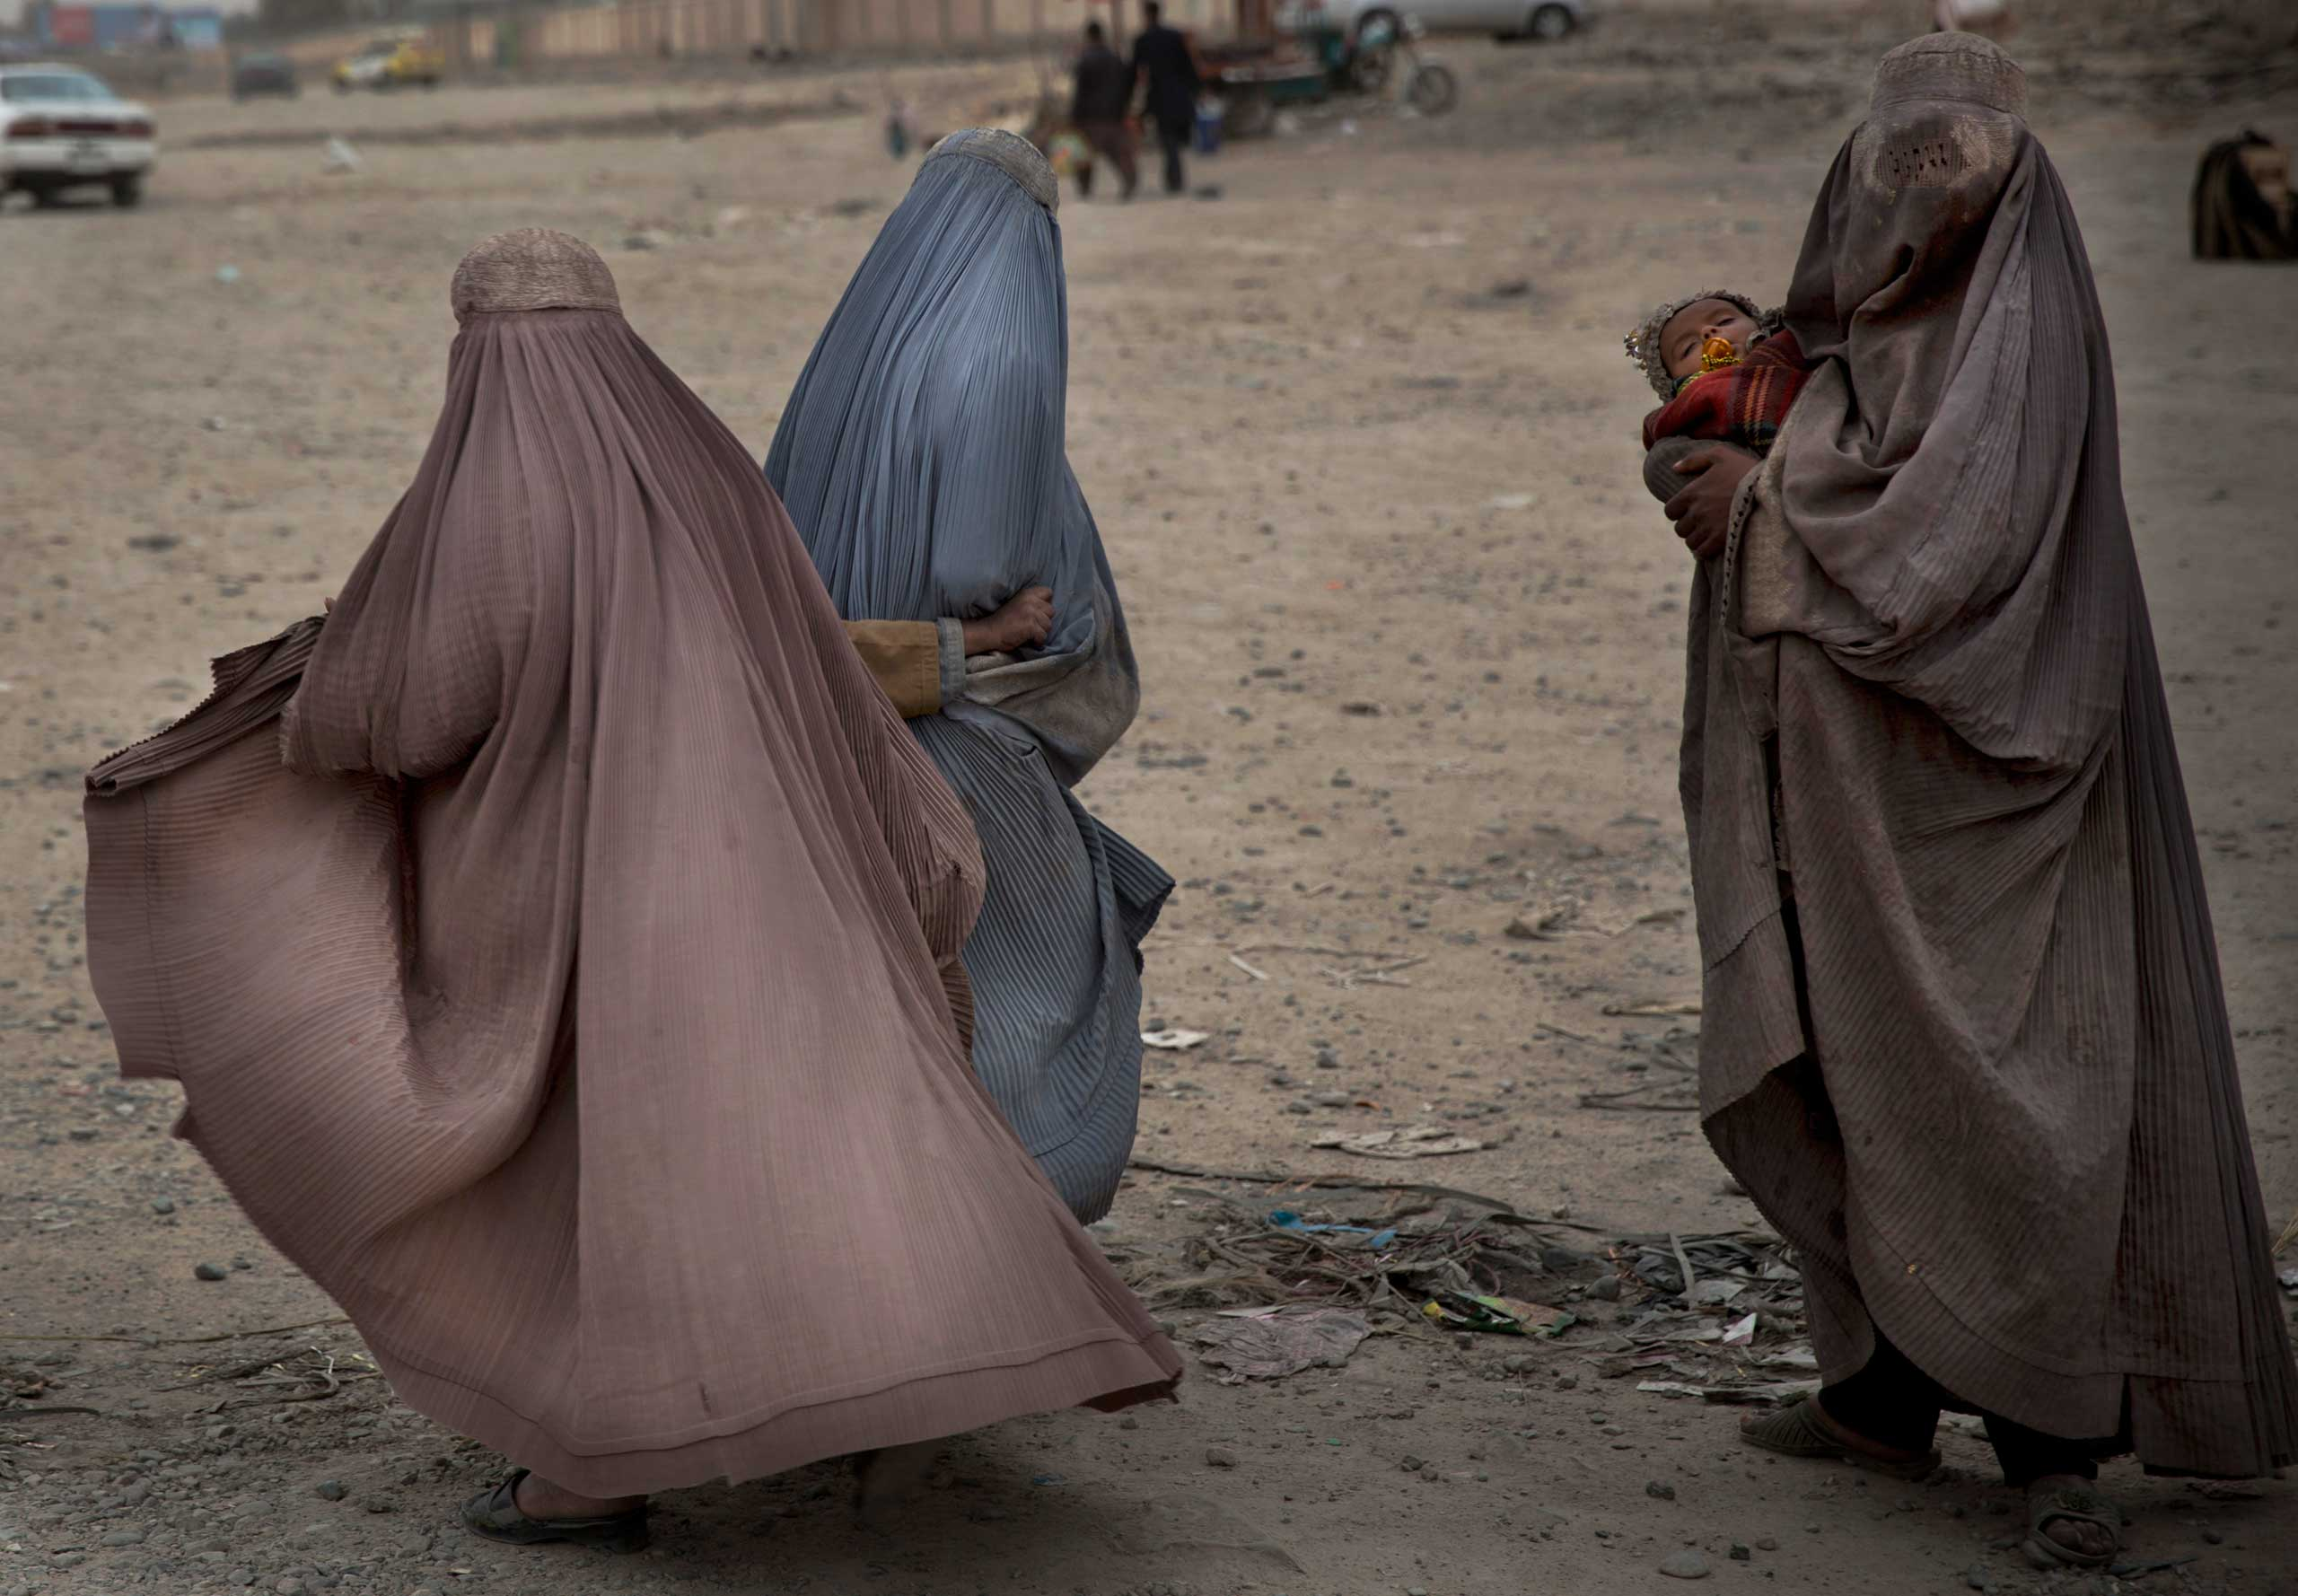 Afghan women beg in the street for money in the center of Kandahar, Afghanistan, March 12, 2014.